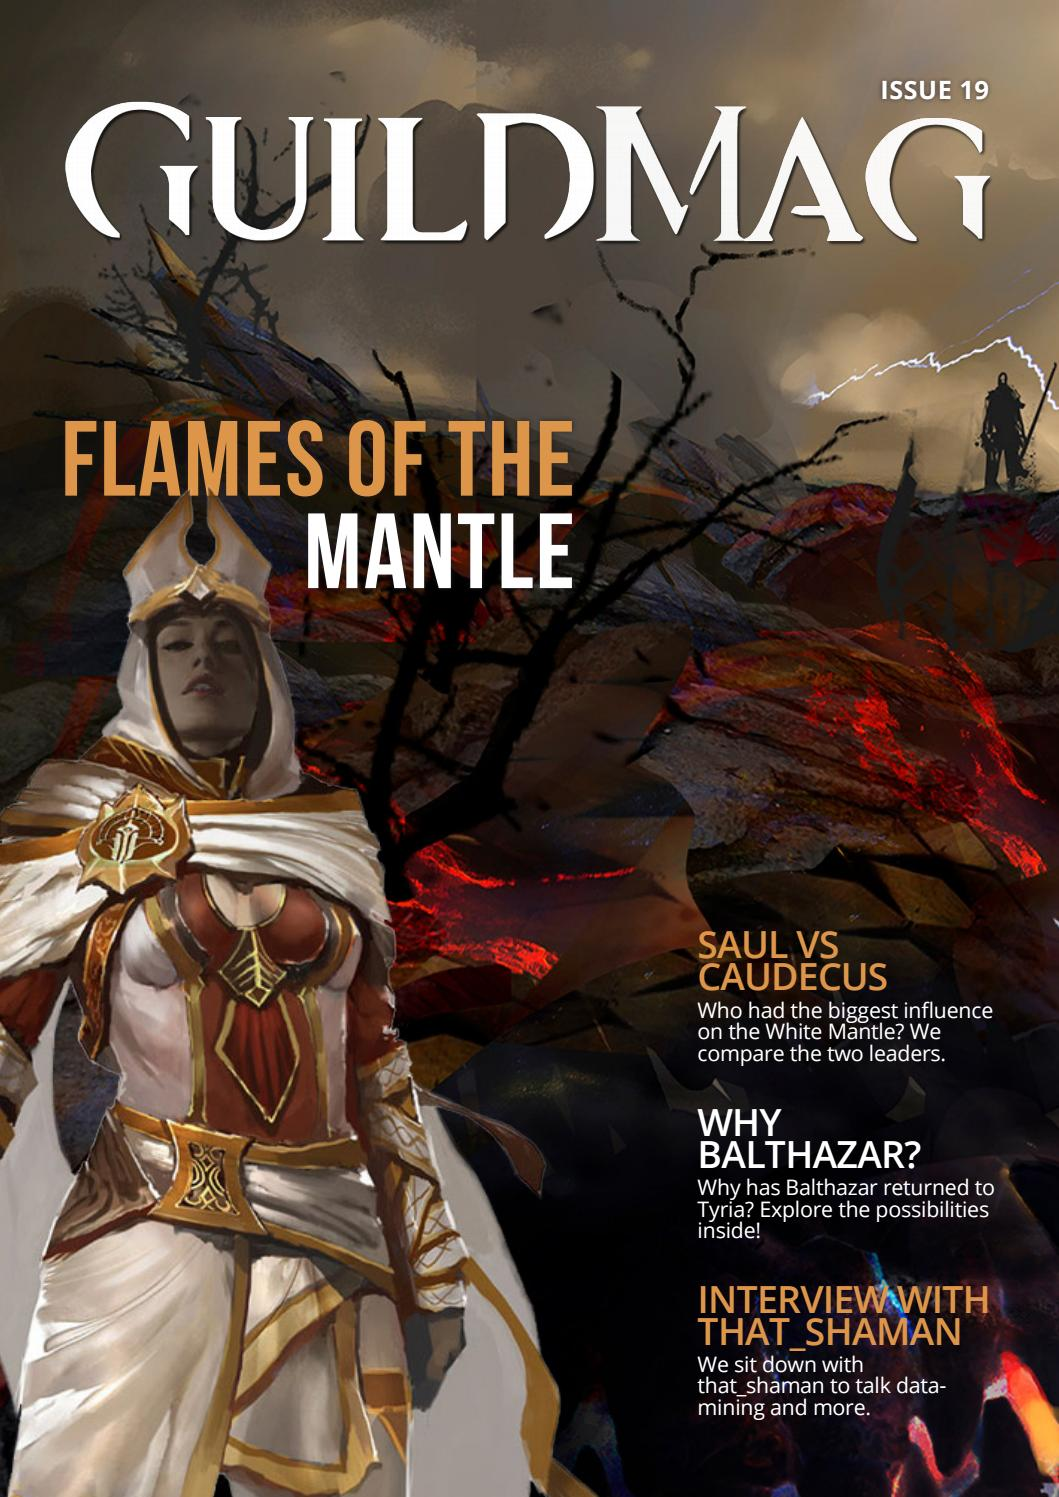 GuildMag Issue 19: Flames of the Mantle by GuildMag - issuu